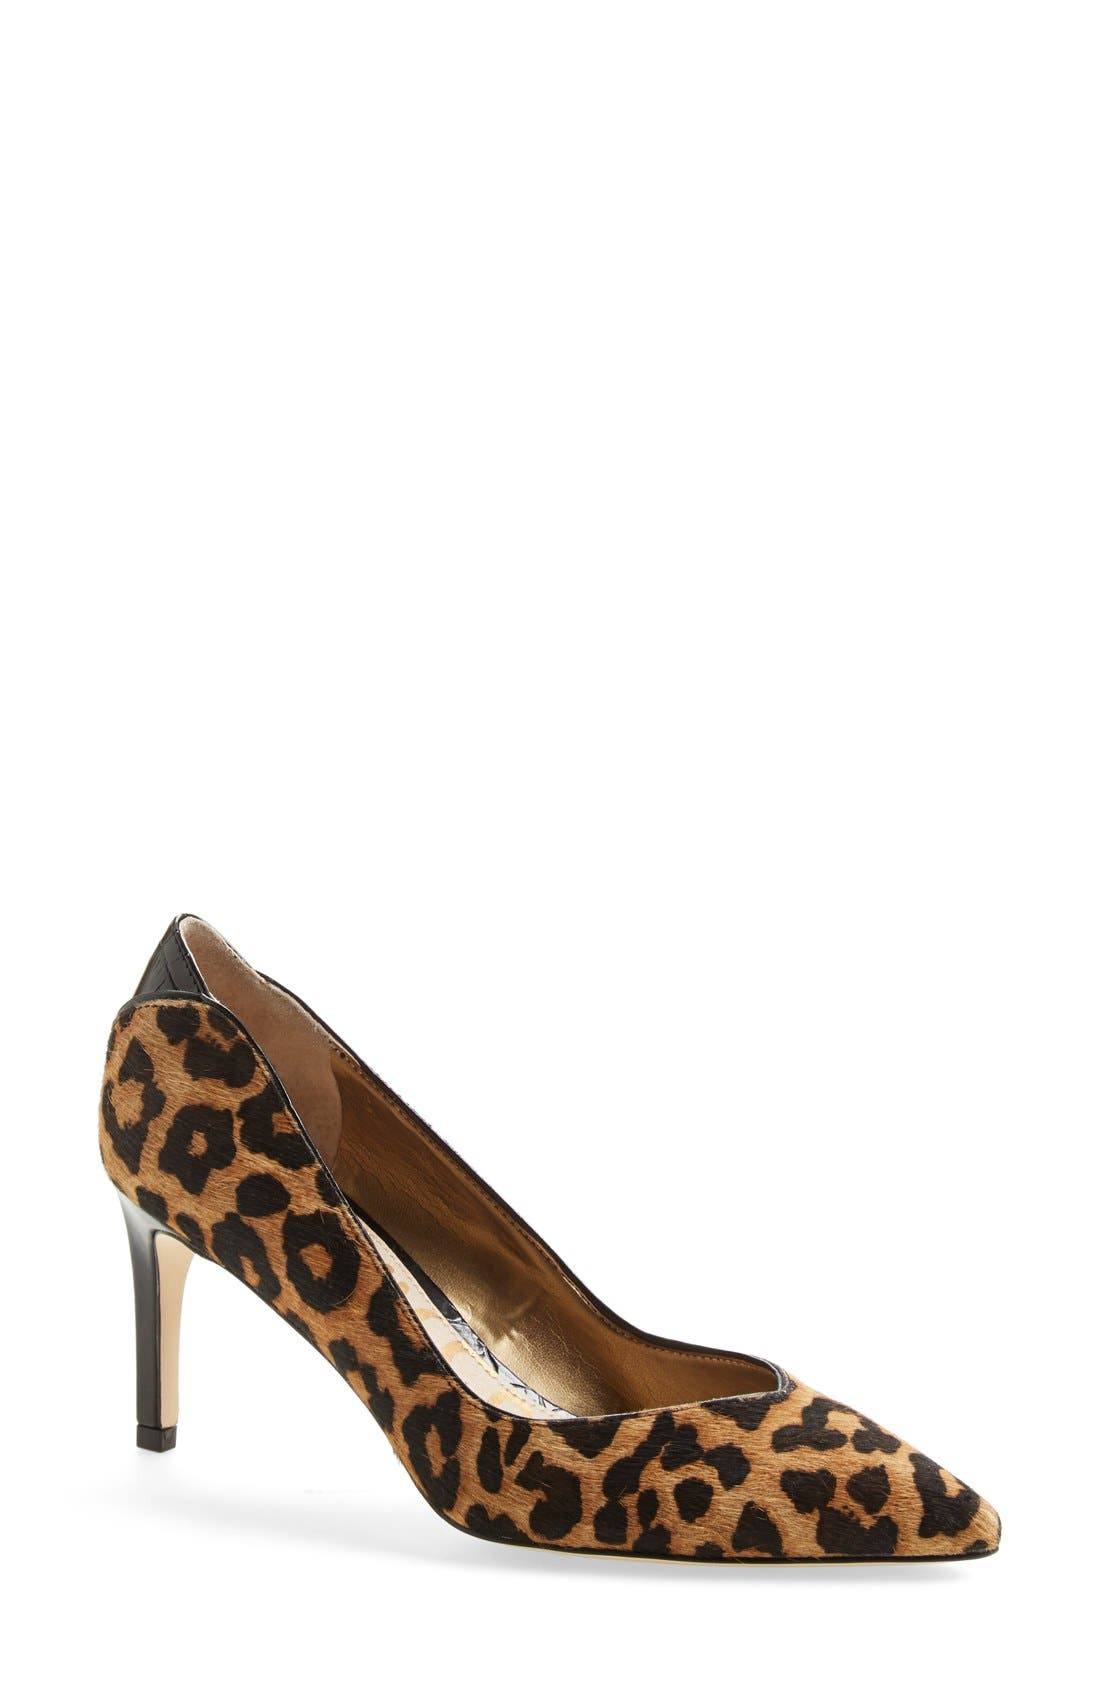 Main Image - Sam Edelman 'Orella' Pump (Women)